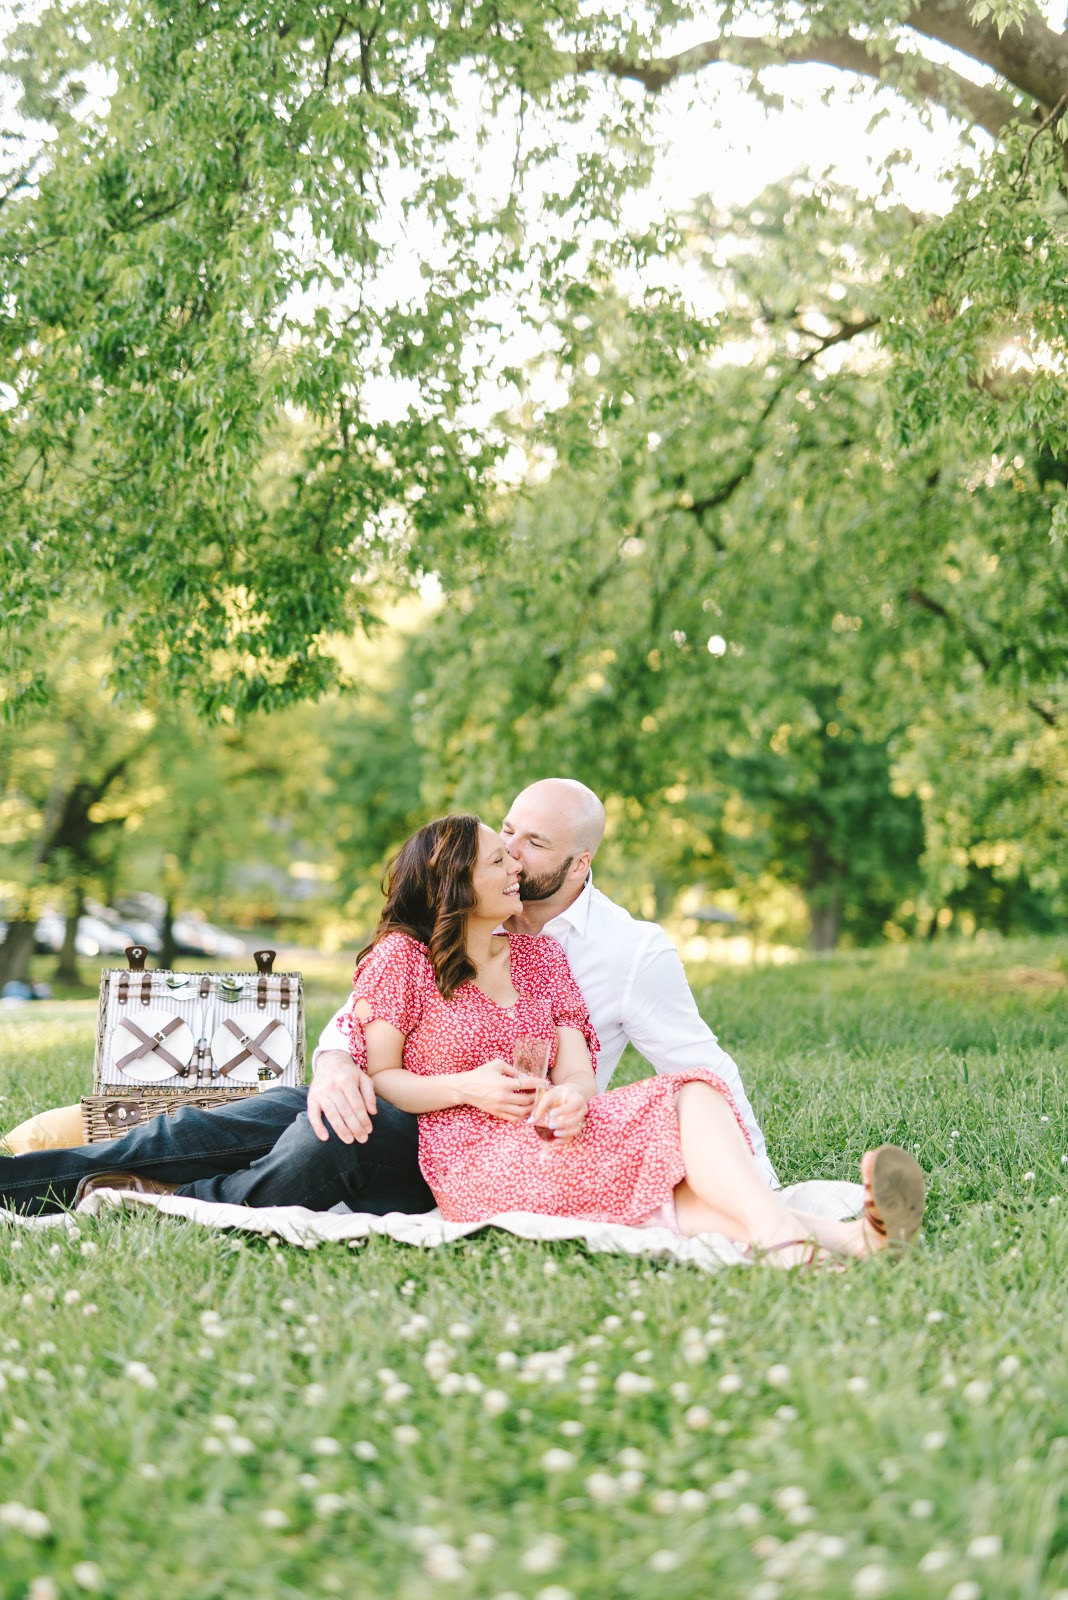 Servier Park: The Best Nashville Engagement Session Locations from Kéra Photography featured on Nashville Bride Guide